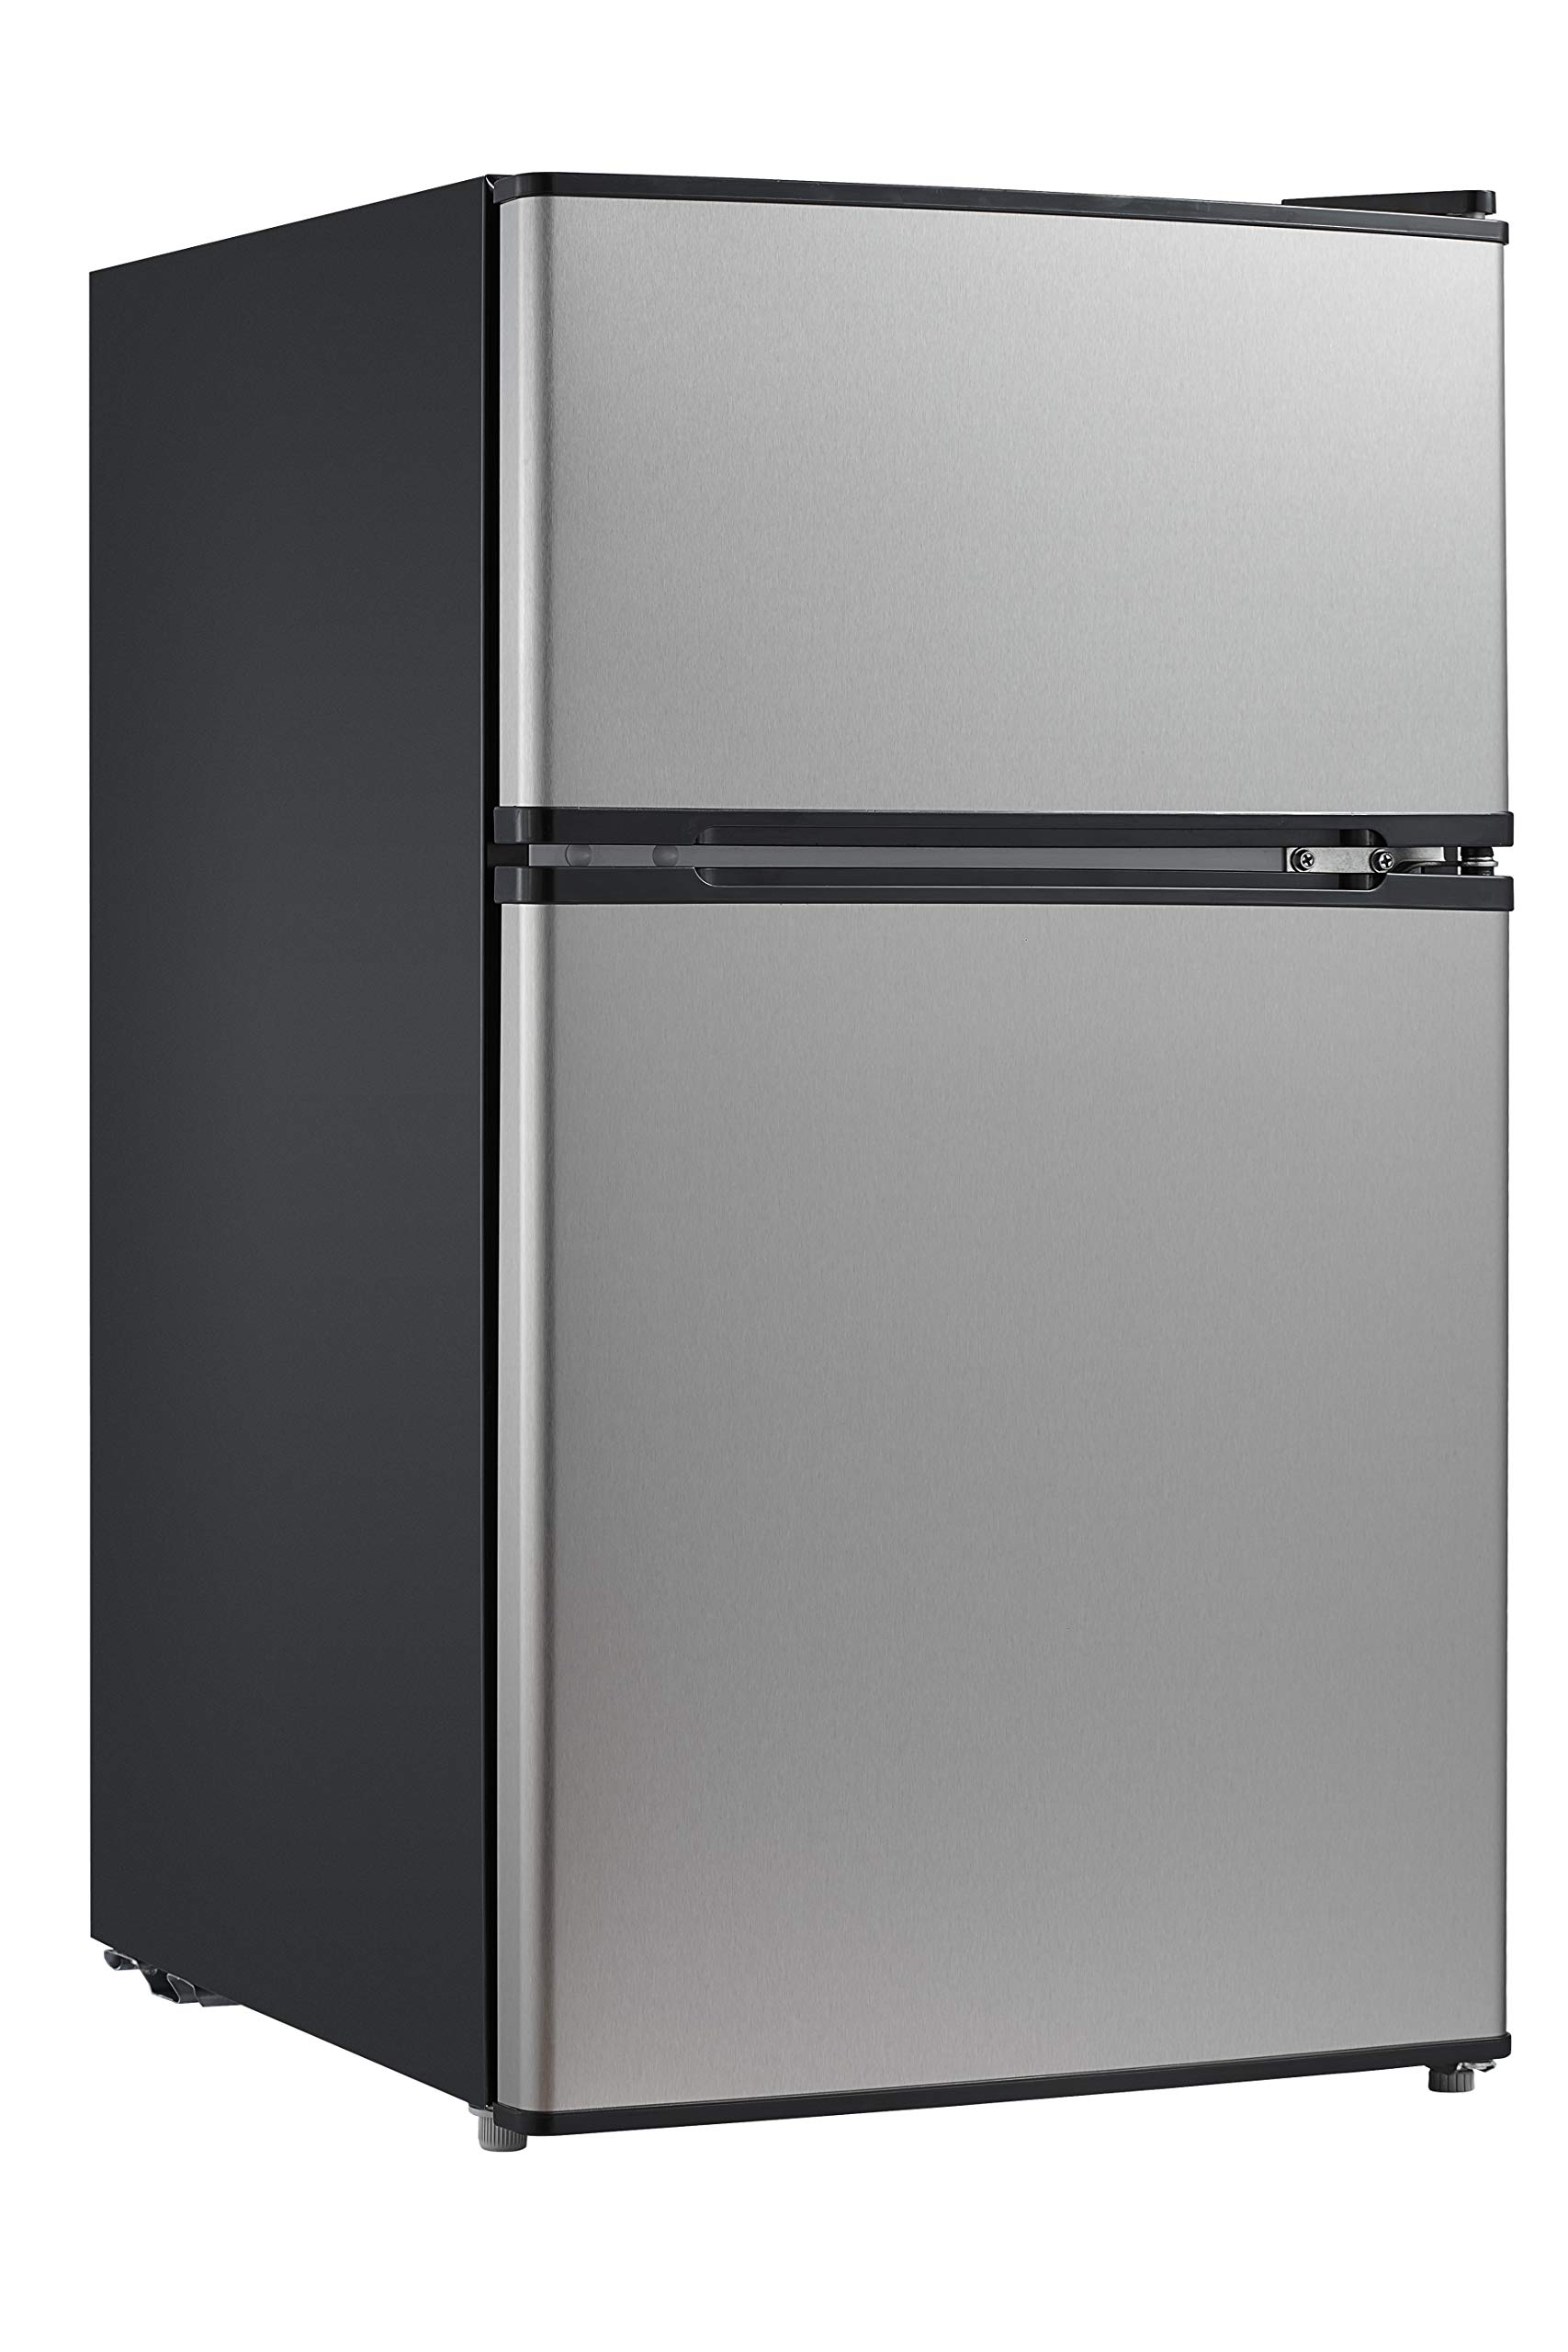 Midea WHD-113FSS1 Double Door Mini Fridge with Freezer for Bedroom Office or Dorm with Adjustable Remove Glass Shelves Compact Refrigerator 3.1 cu ft, Stainless Steel by MIDEA